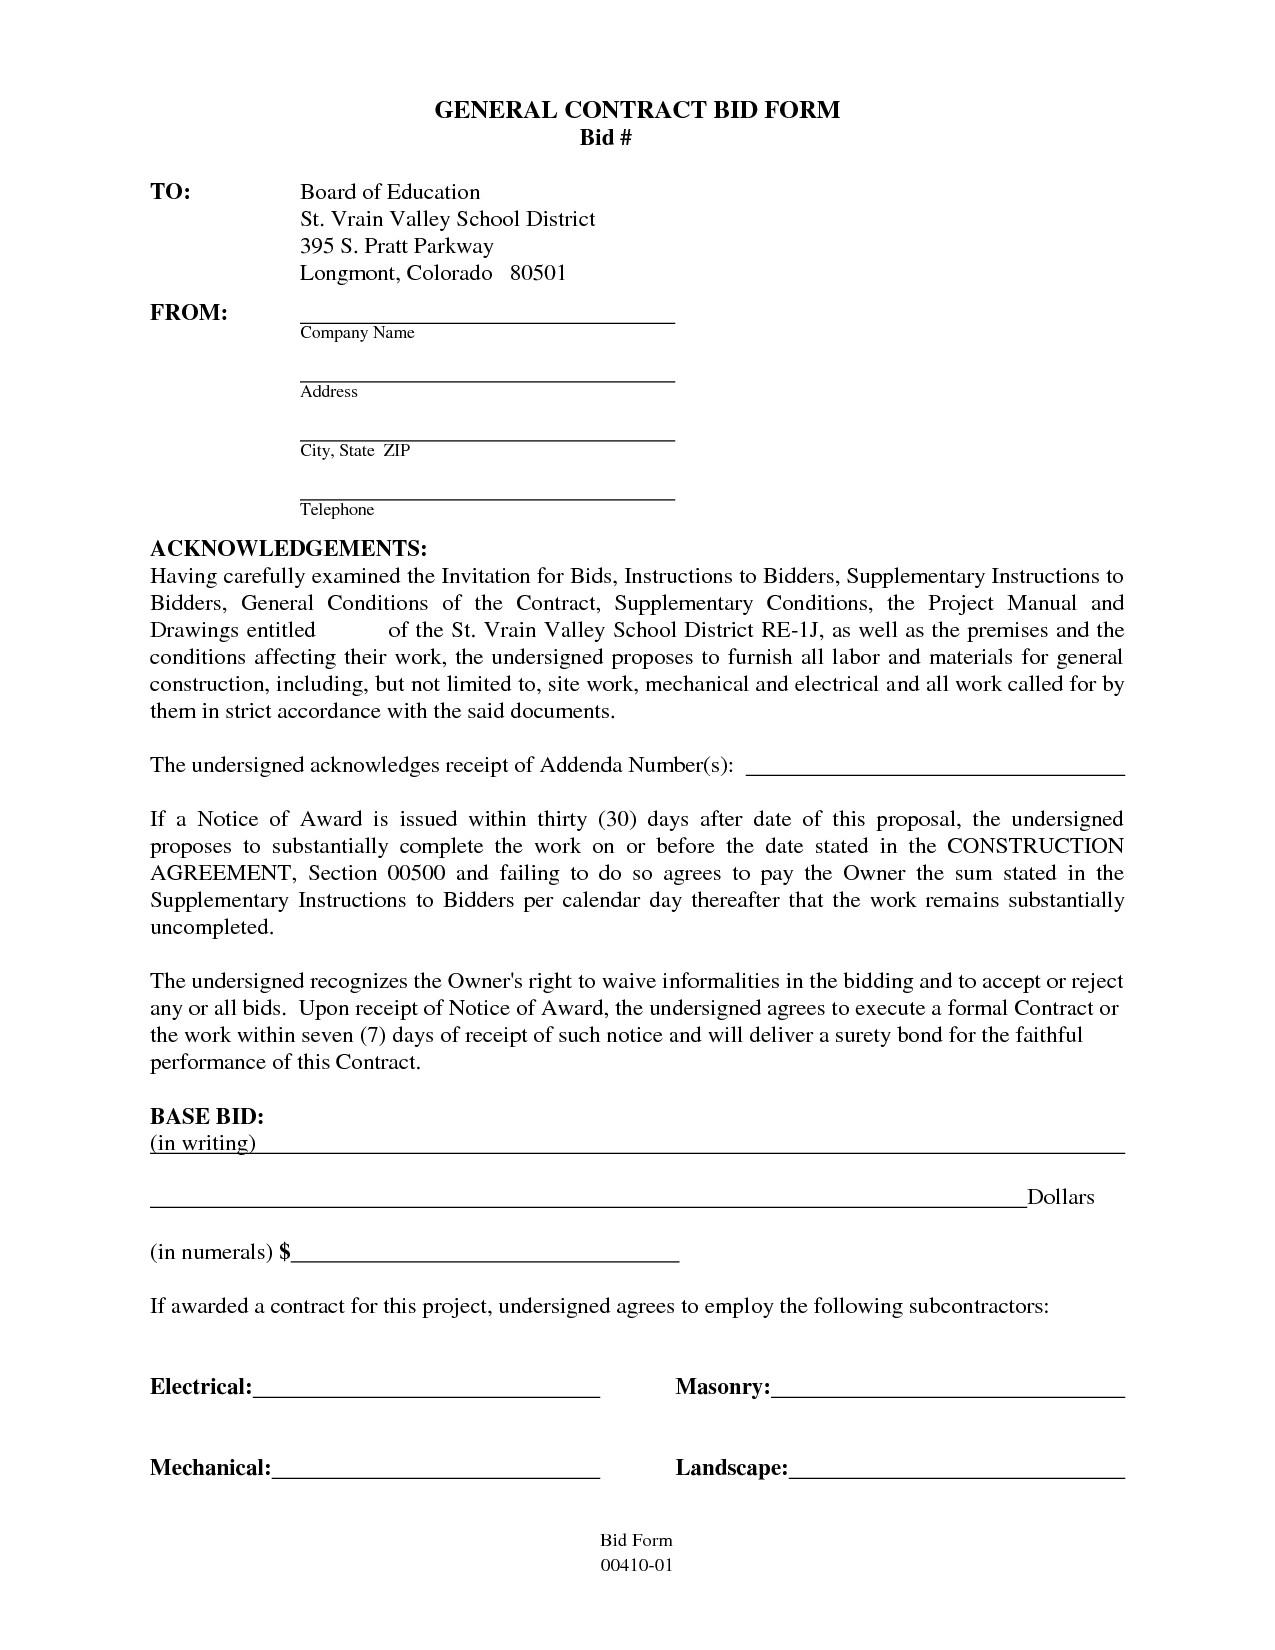 General Contract Agreement Form